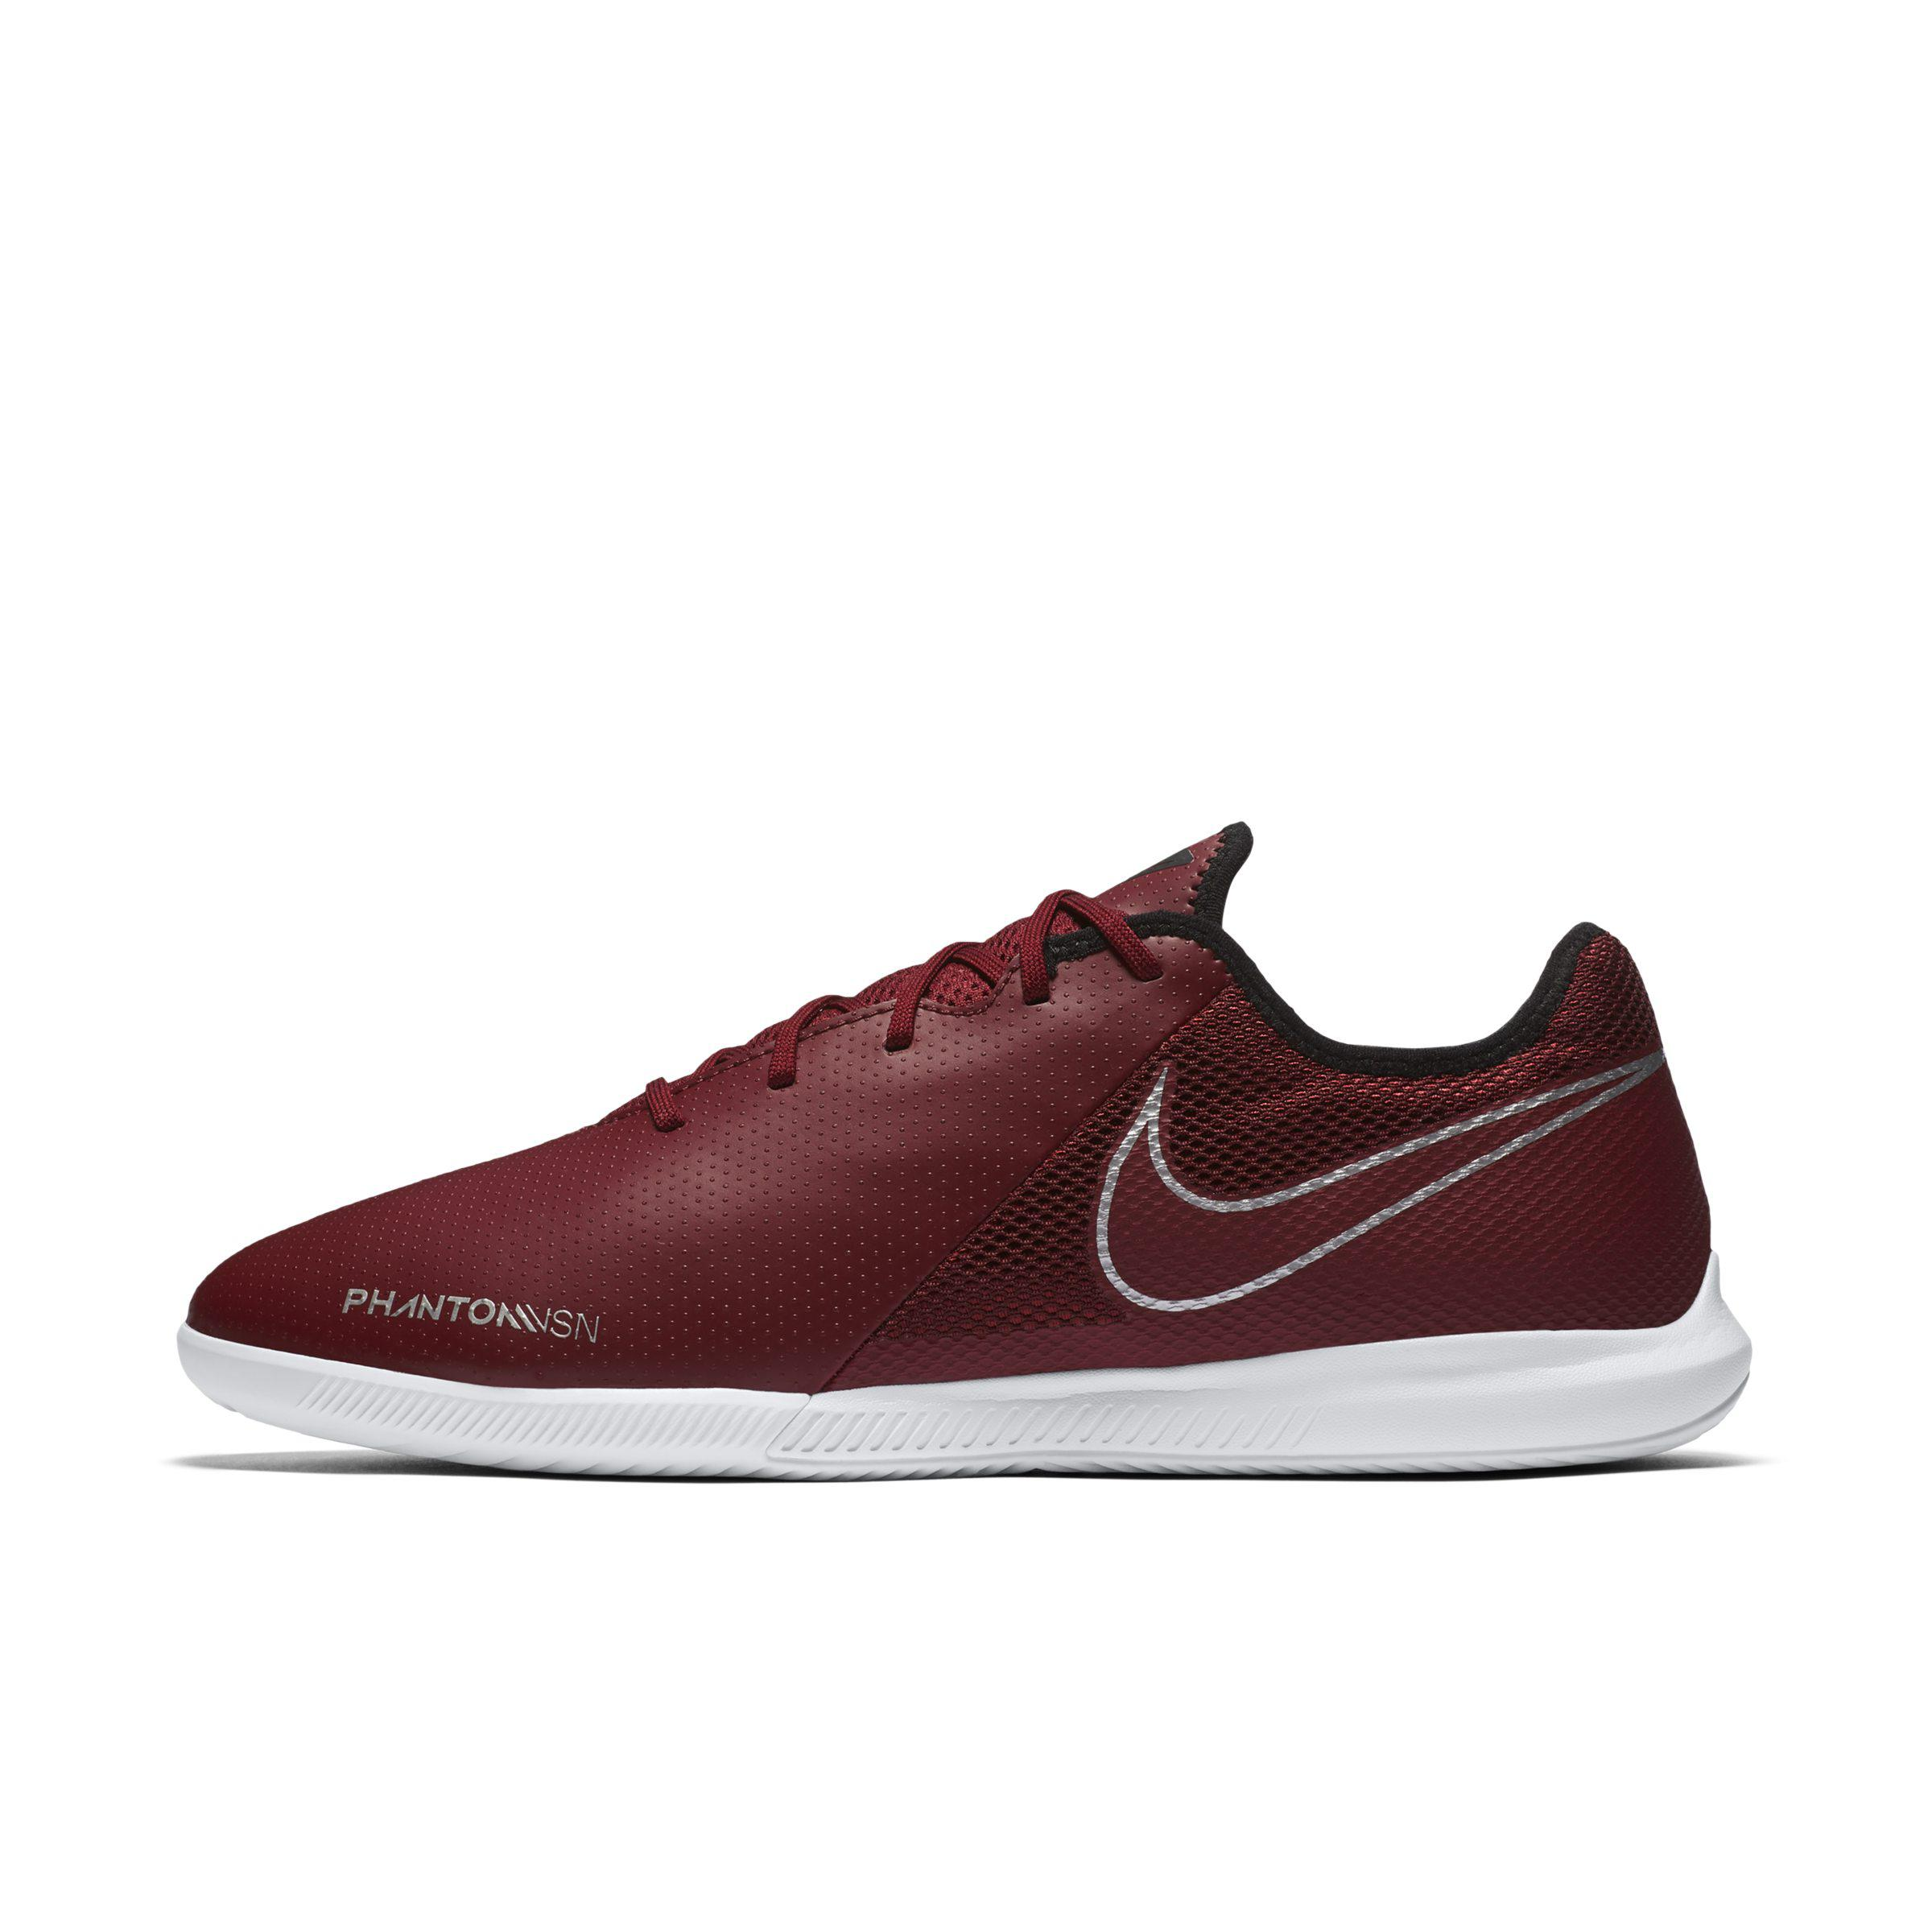 Nike Phantom Vision Academy Dynamic Fit Indoor court Football Shoe ... 8c2f0db9d